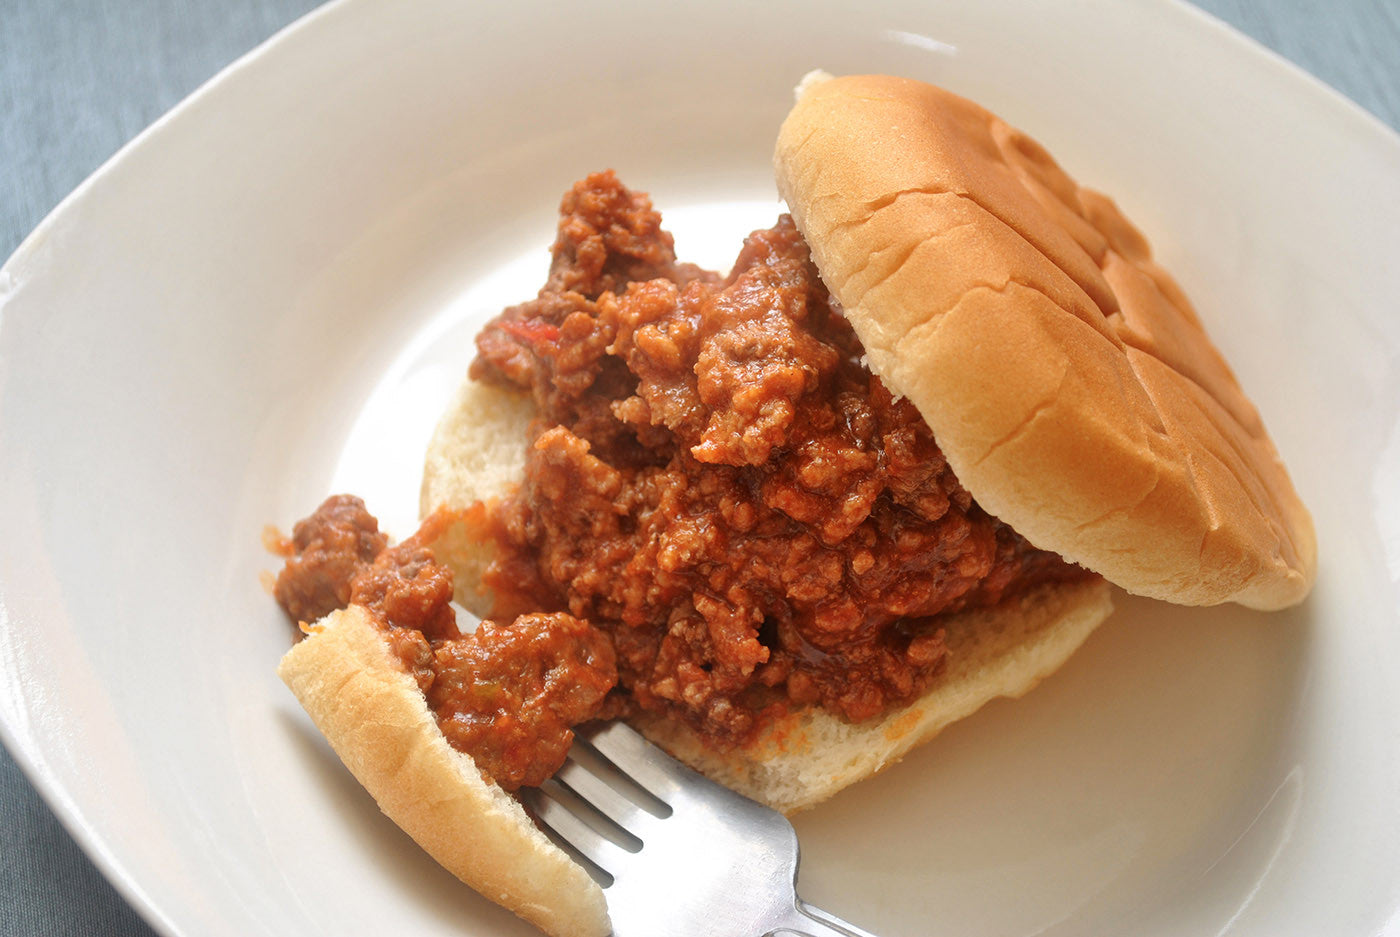 Try Out Tasty Sloppy Joes with VitaClay for Game Day